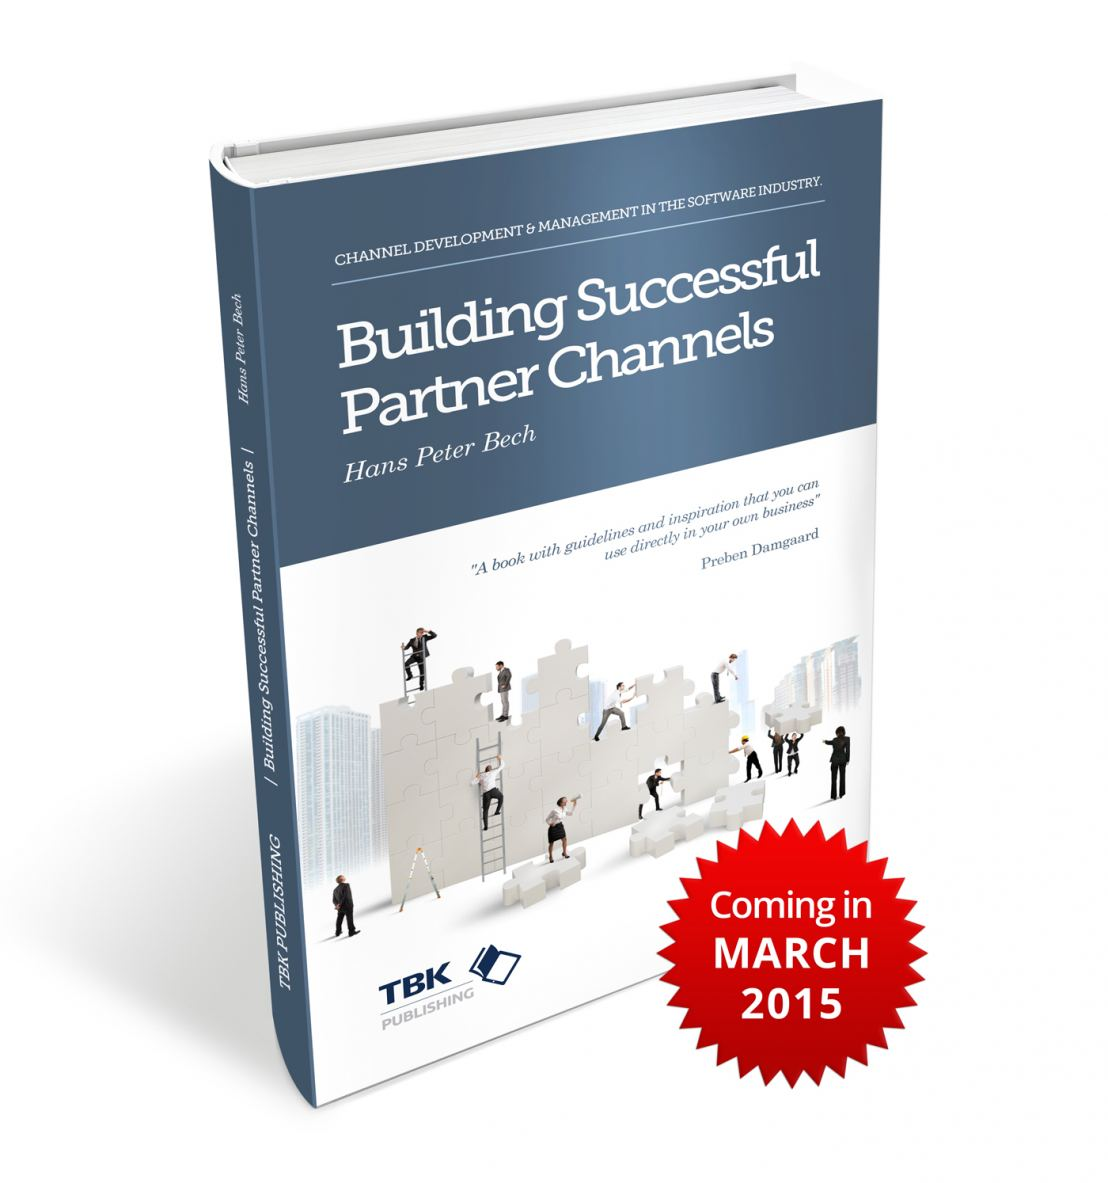 Building Successful Partner Channels in the Software Industry